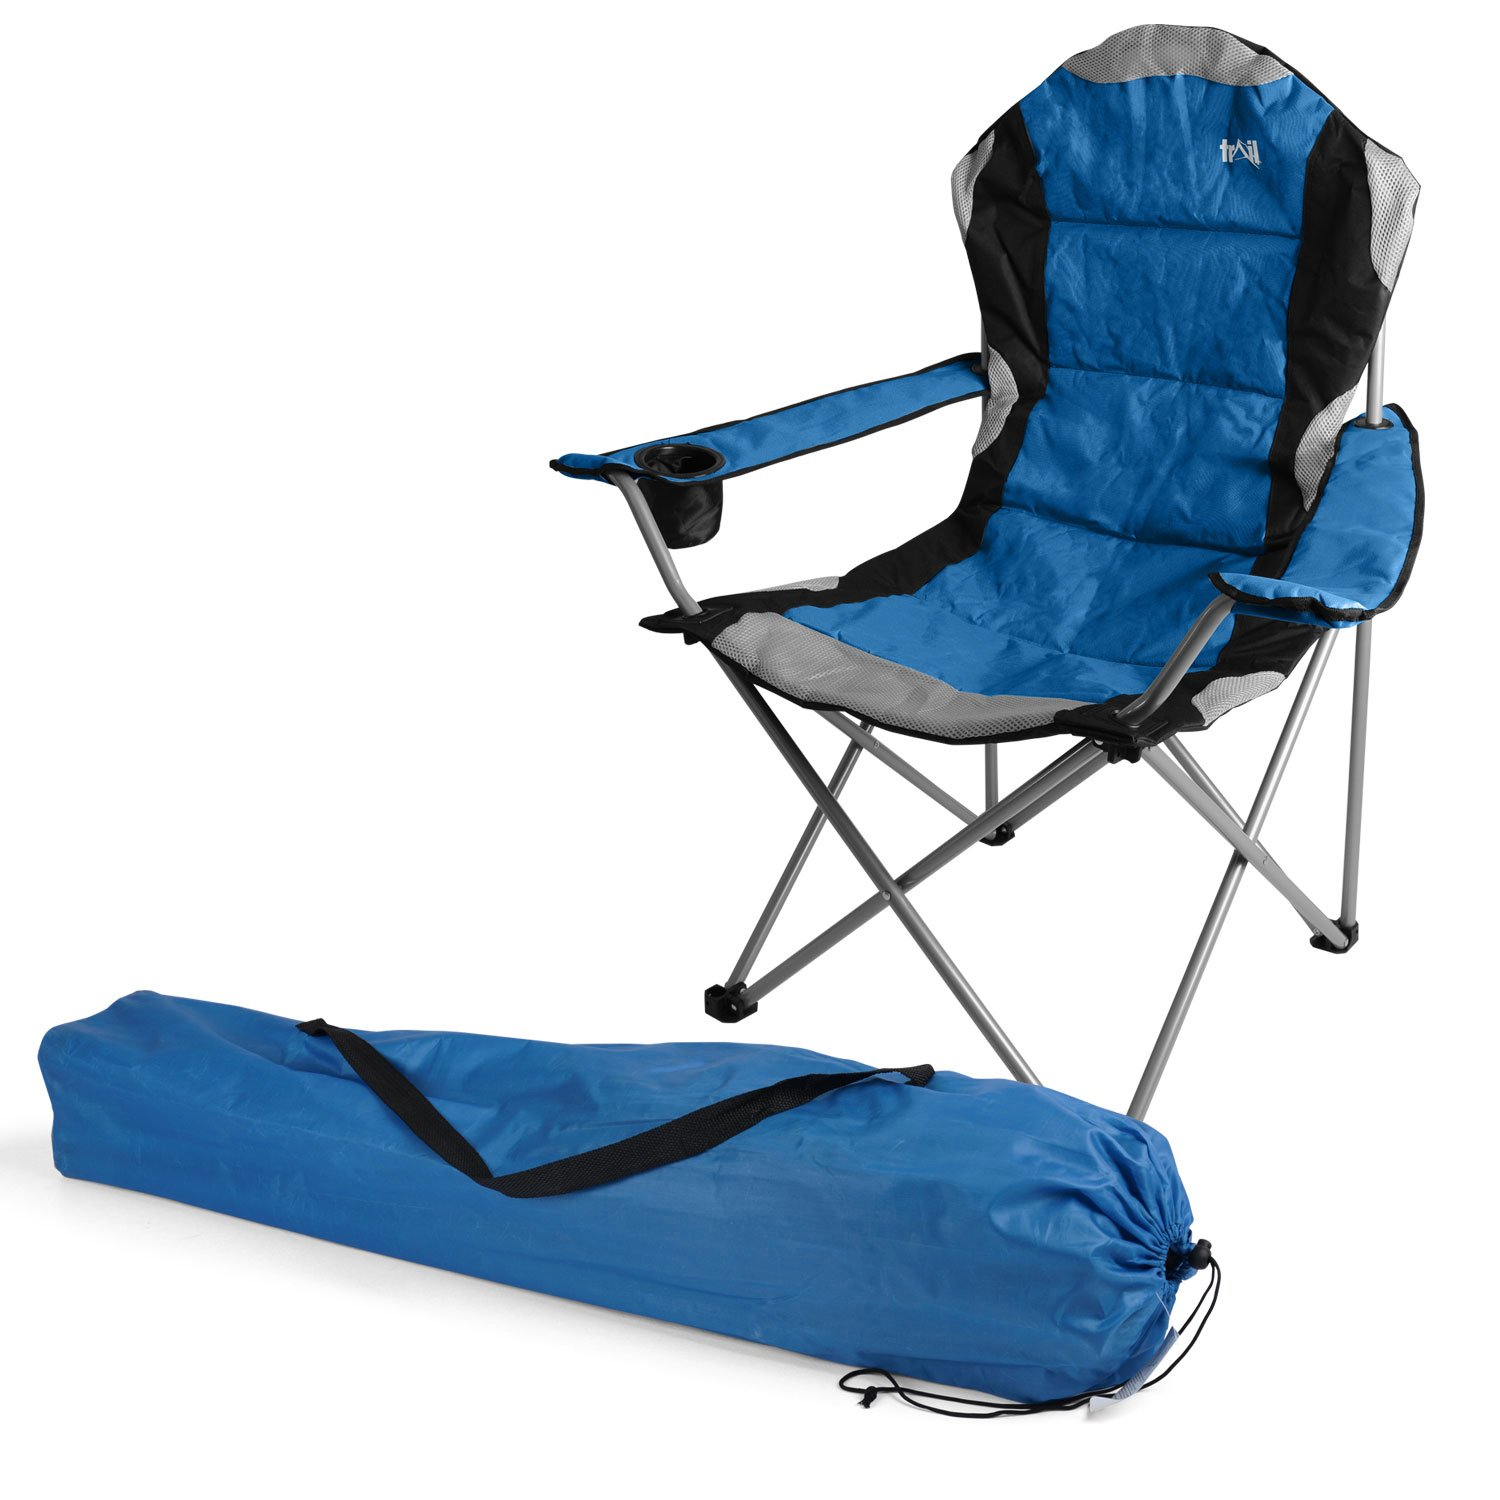 Amazon Best Sellers The most popular items in Camping Chairs